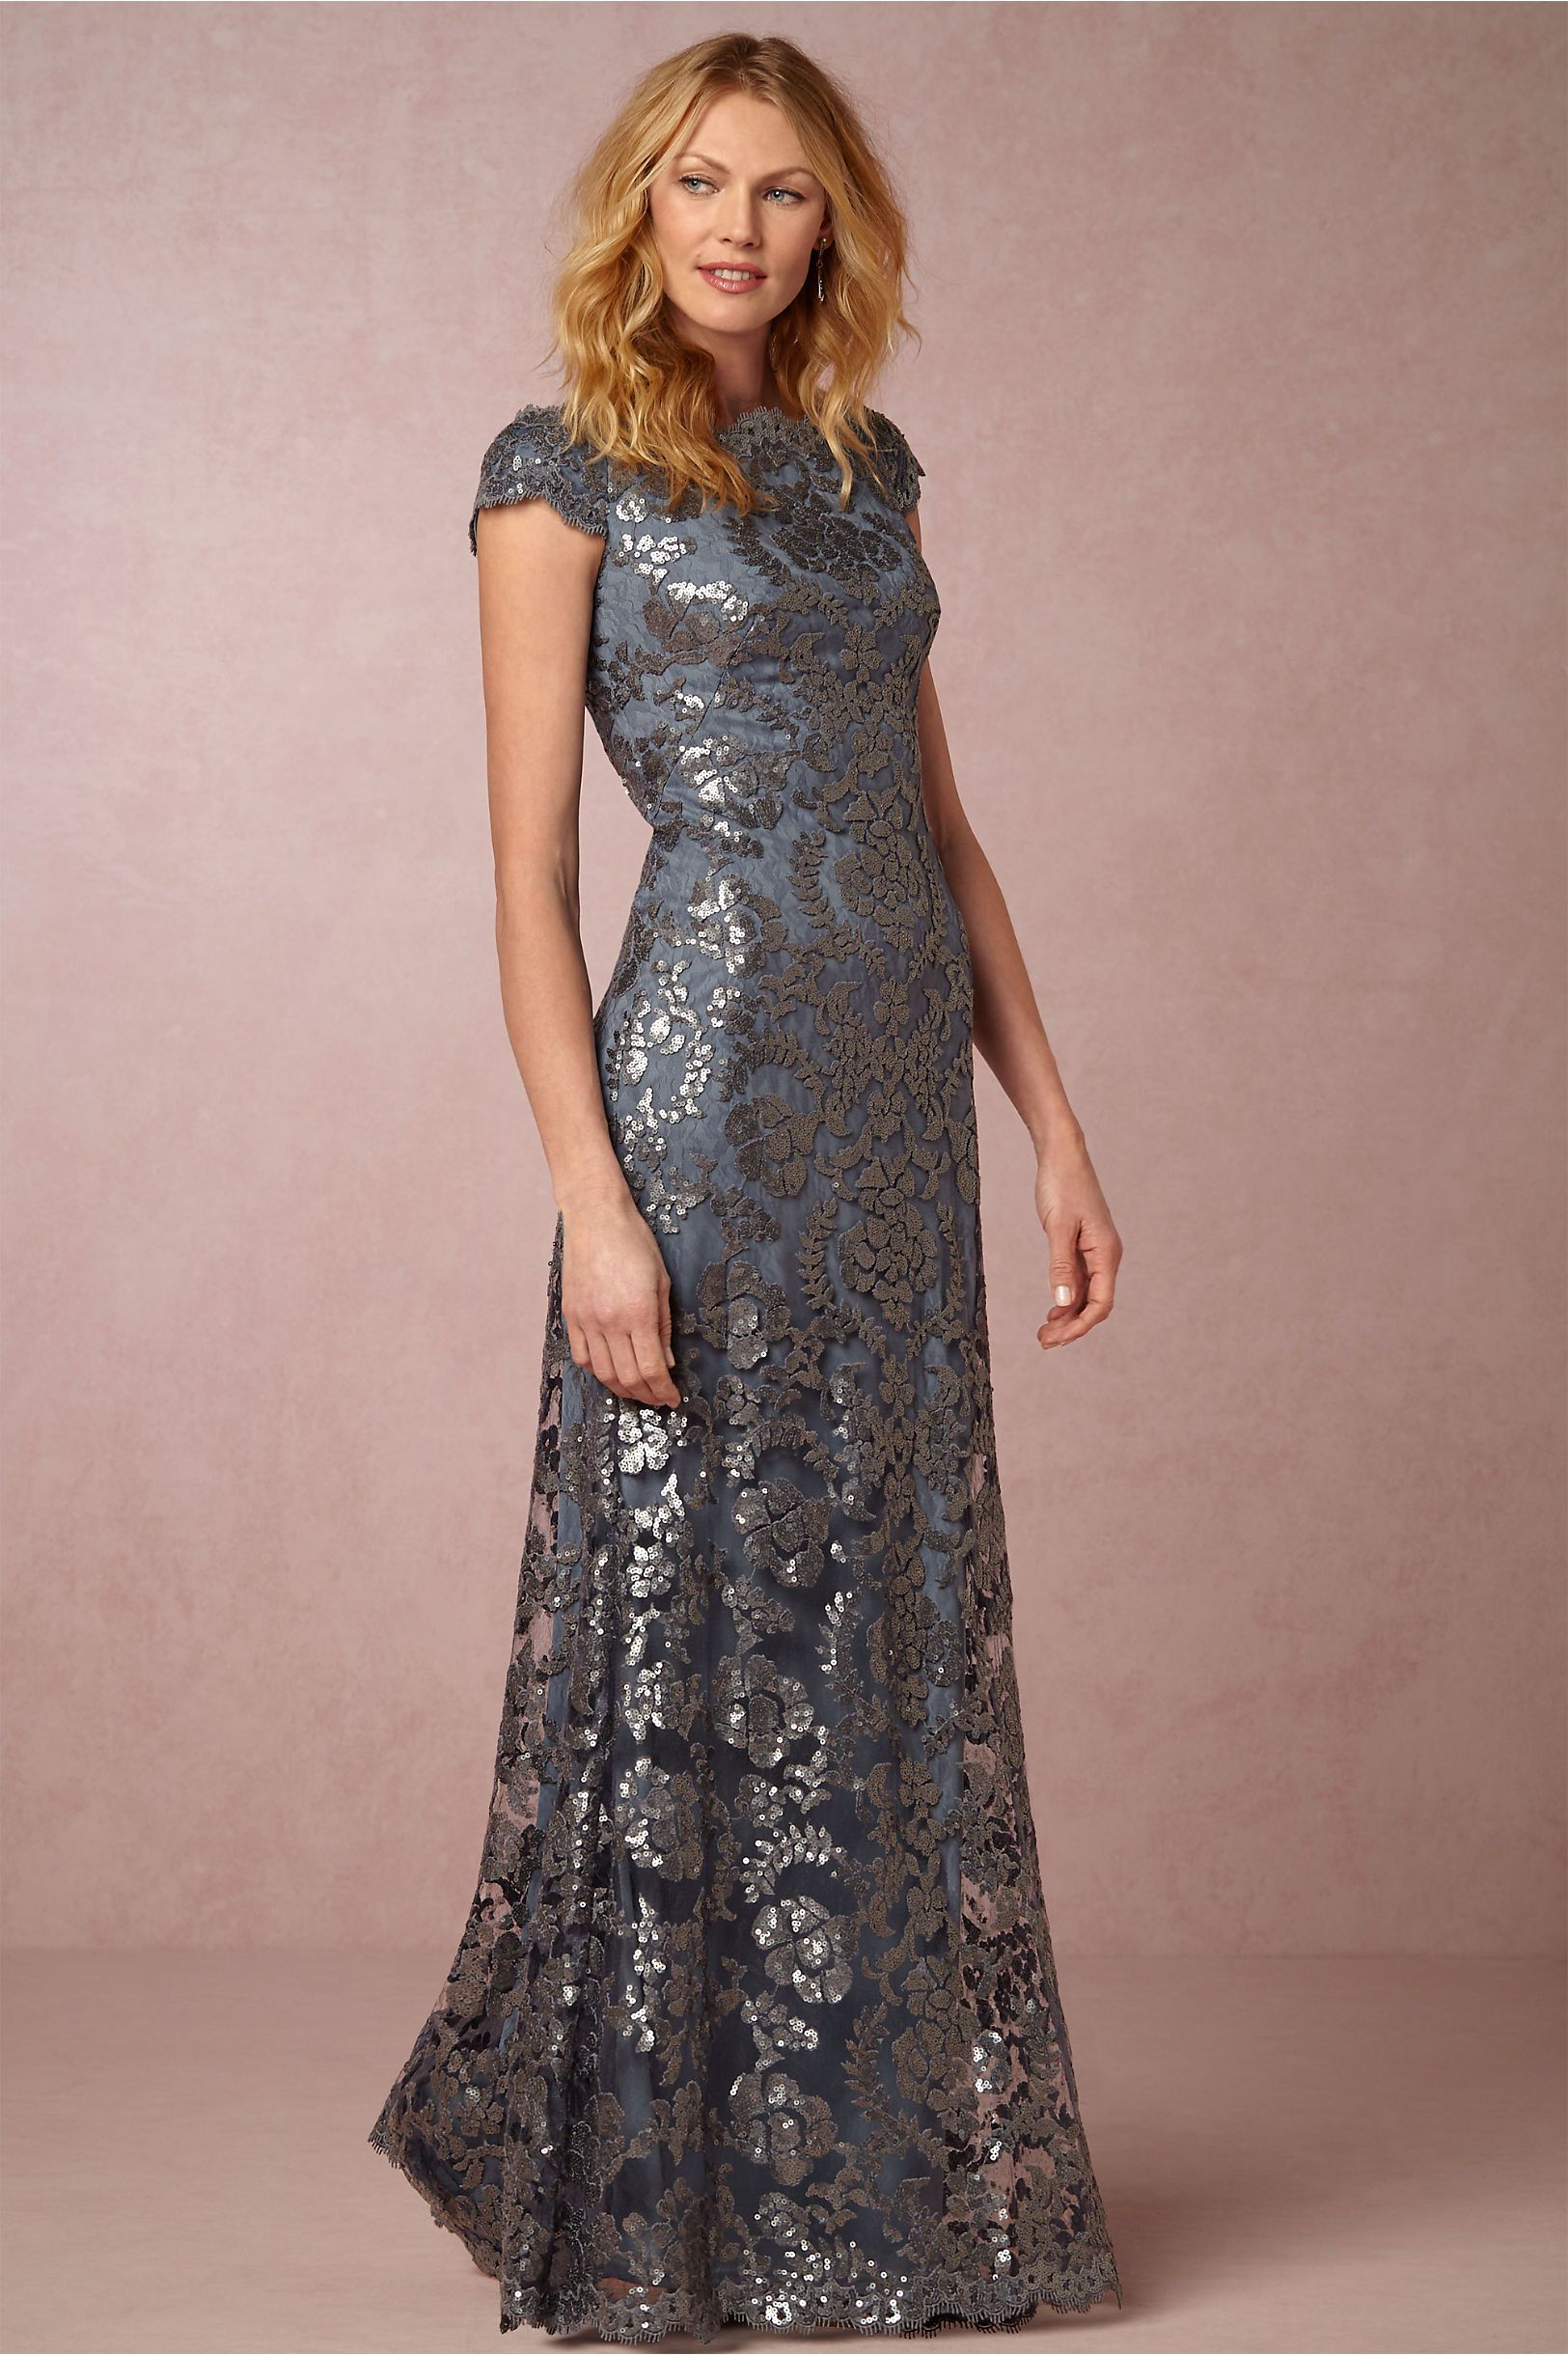 80e934e0bf1f Blue lace mother-of-the-bride dress | Odette Dress from BHLDN ...